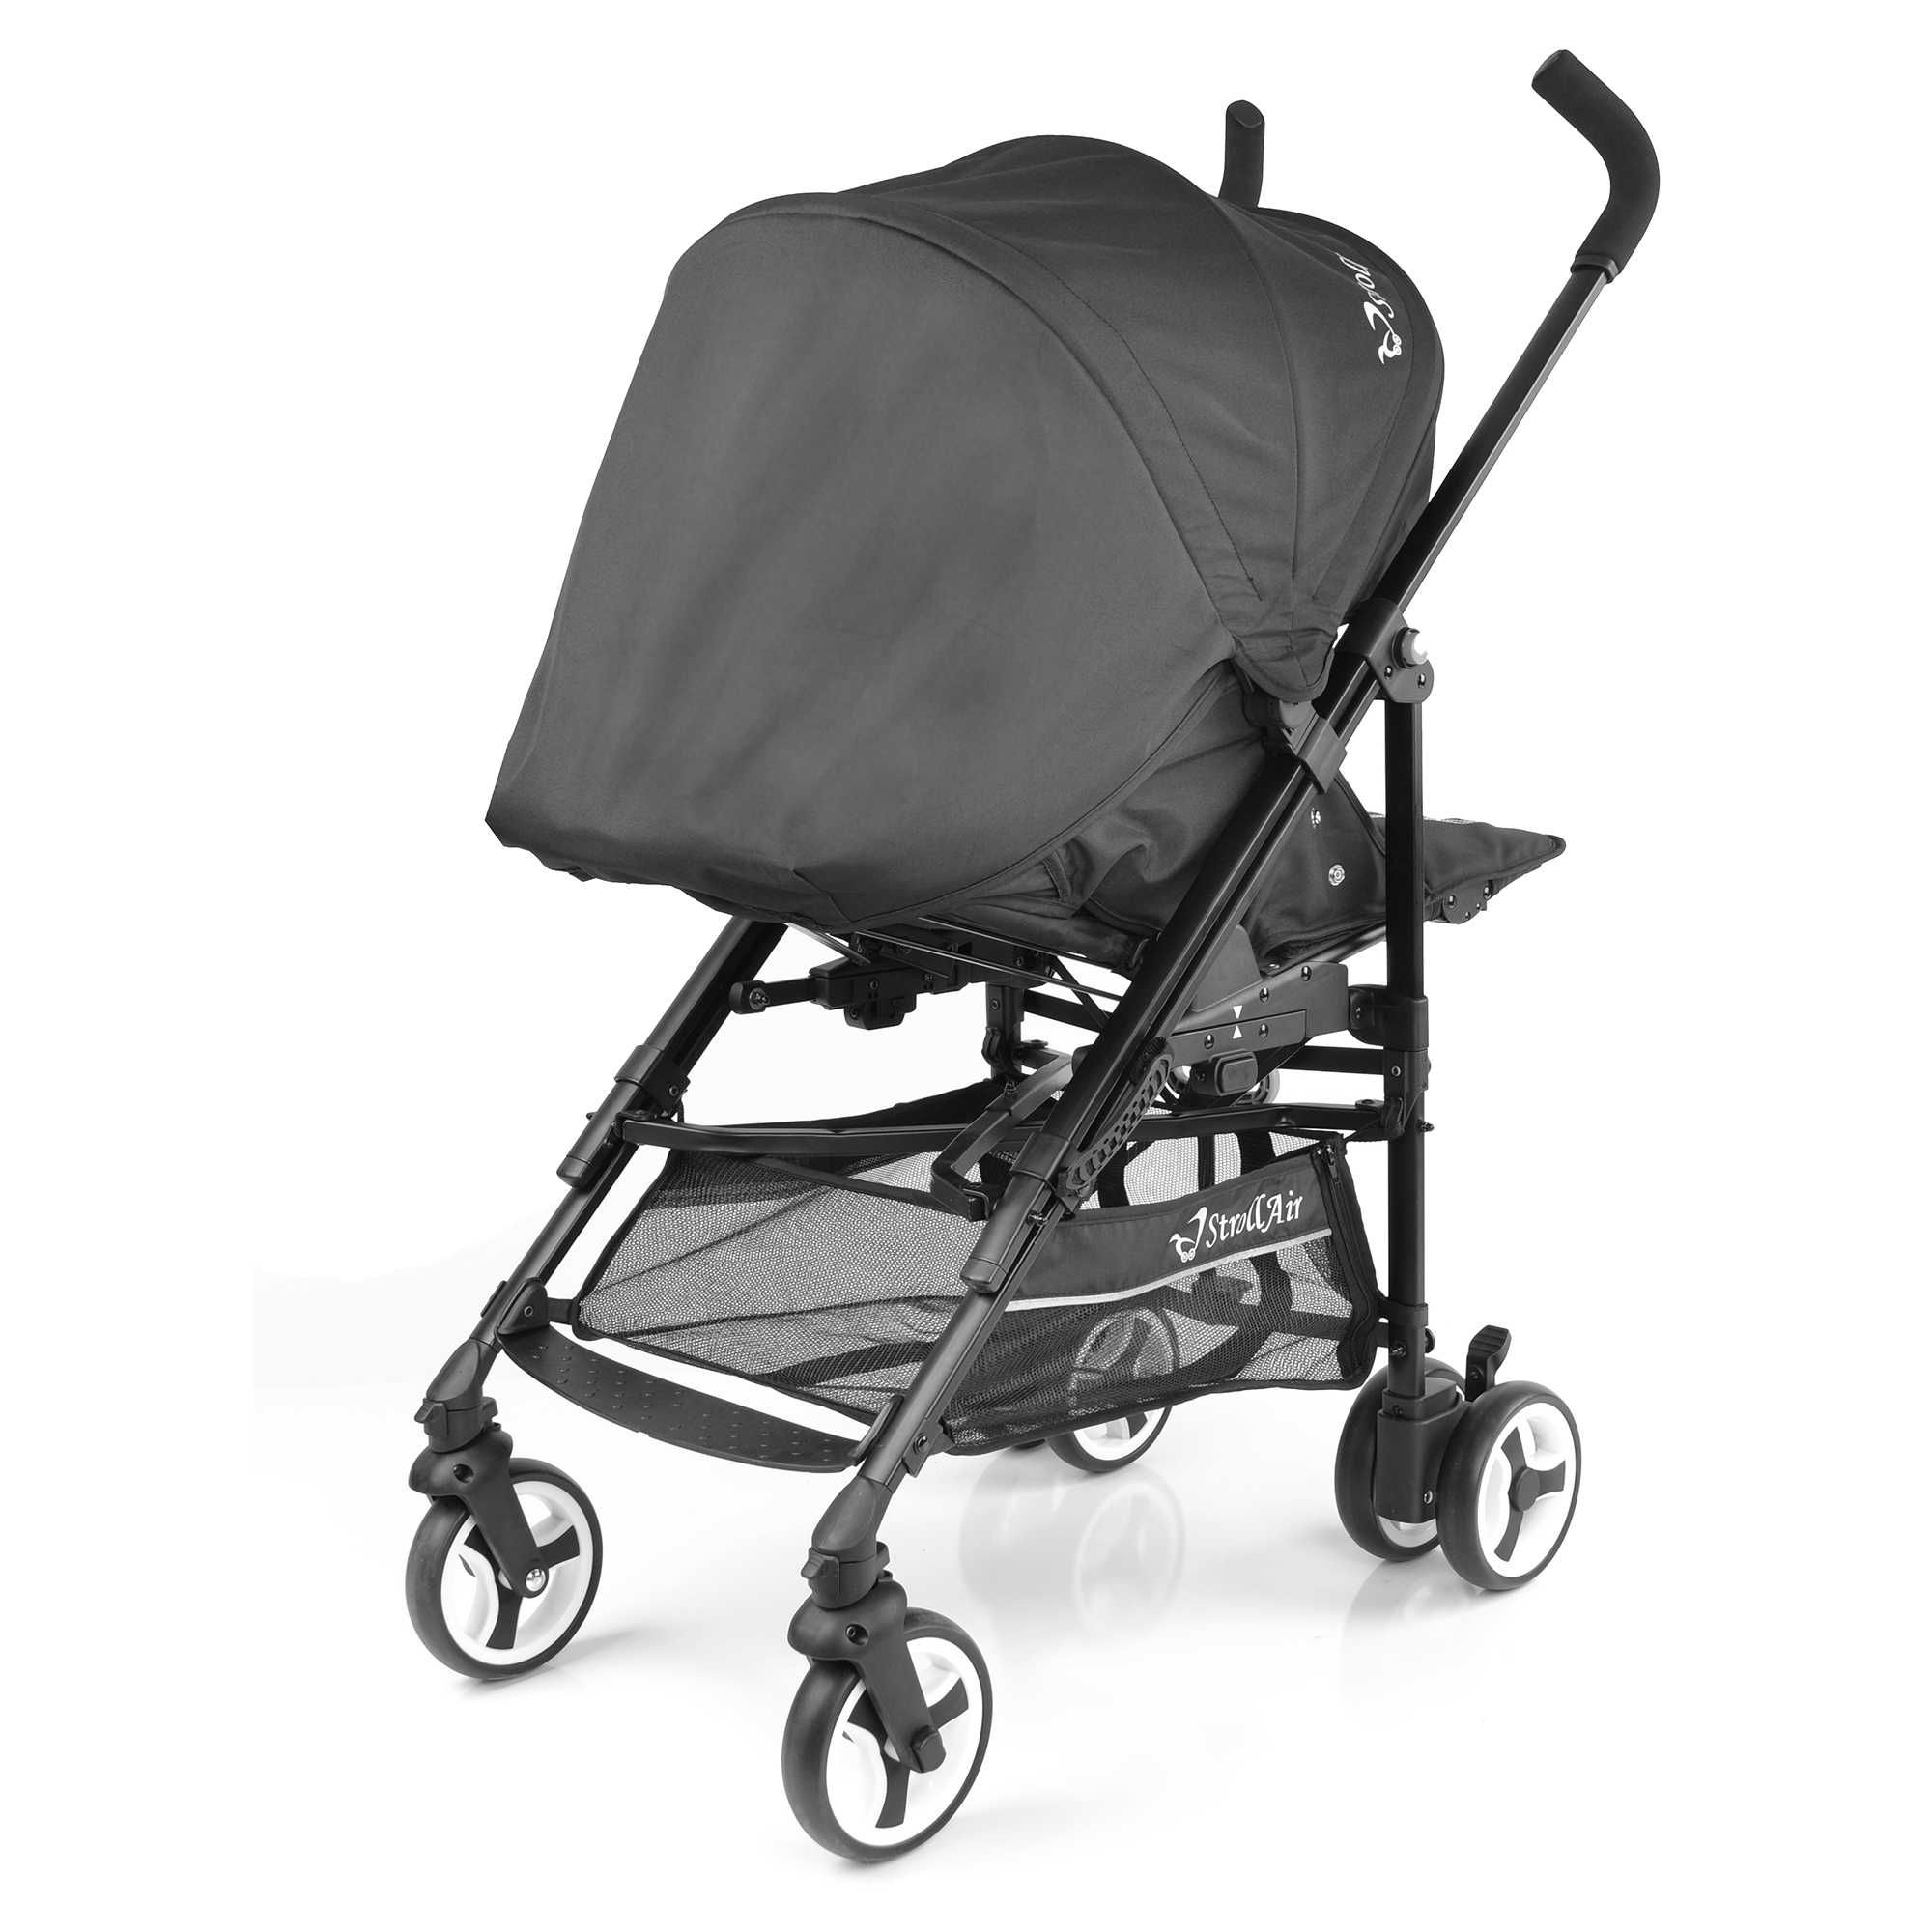 StrollAir ReVu Reversible Umbrella Stroller in Black